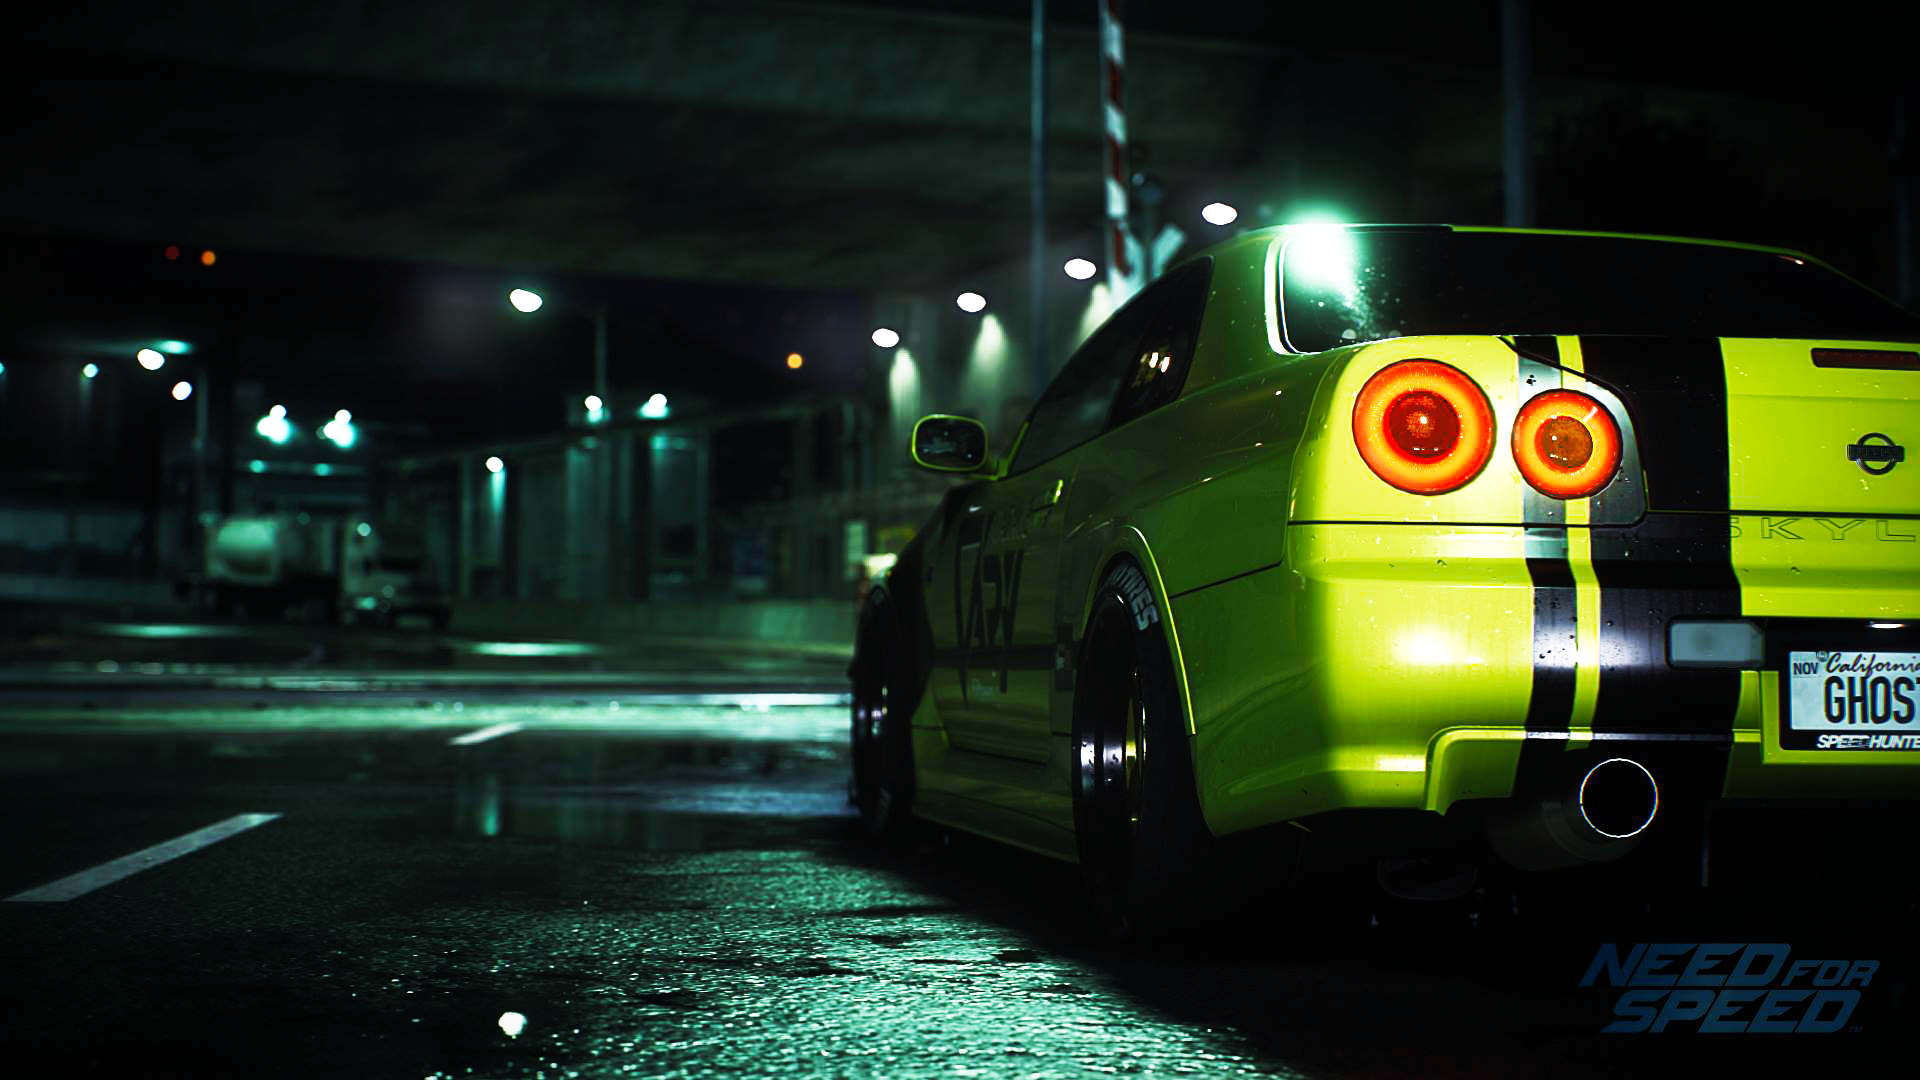 Need For Speed 2015 Hd Wallpaper Background Image 1920x1080